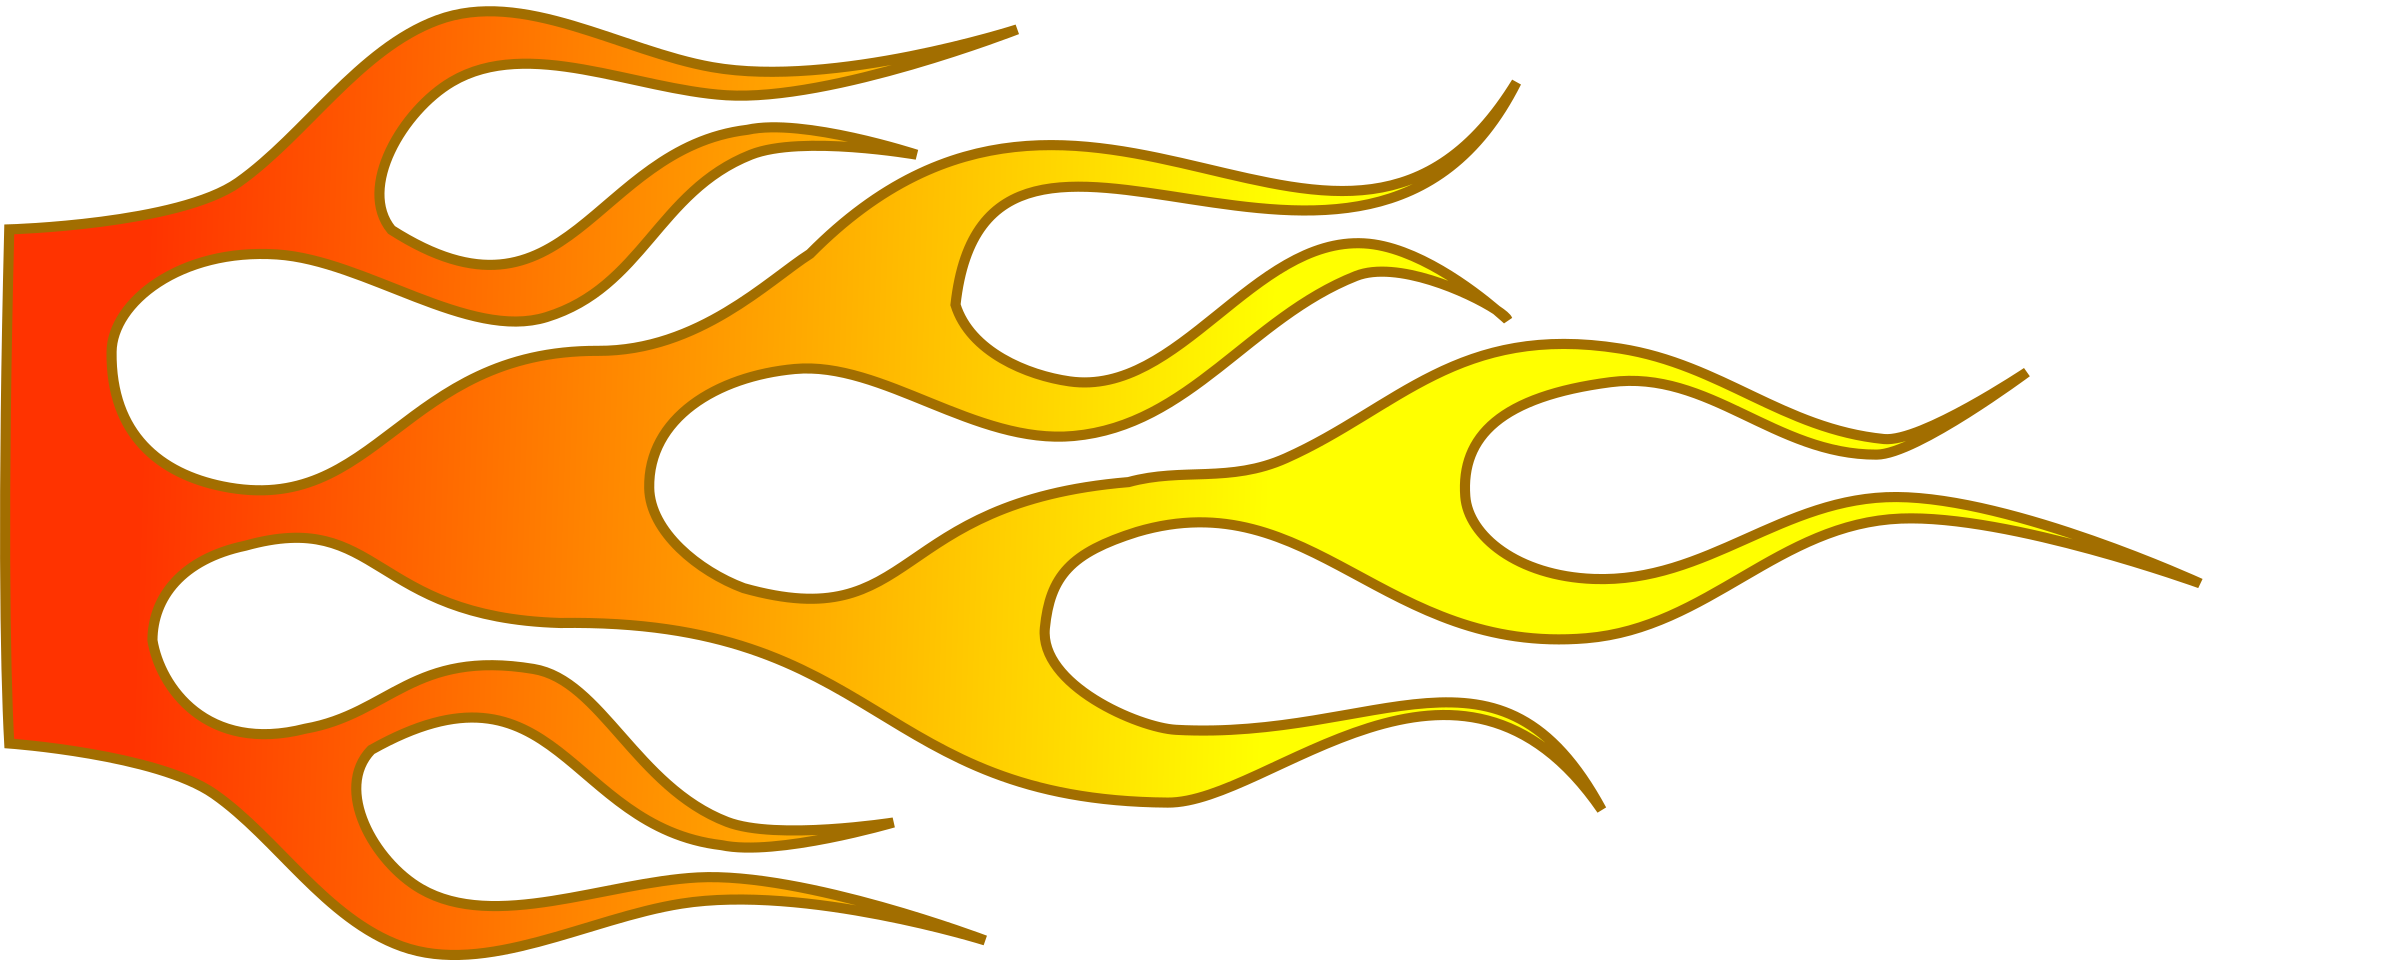 Fire flames likewise animation islam symbol additionally pink fire for